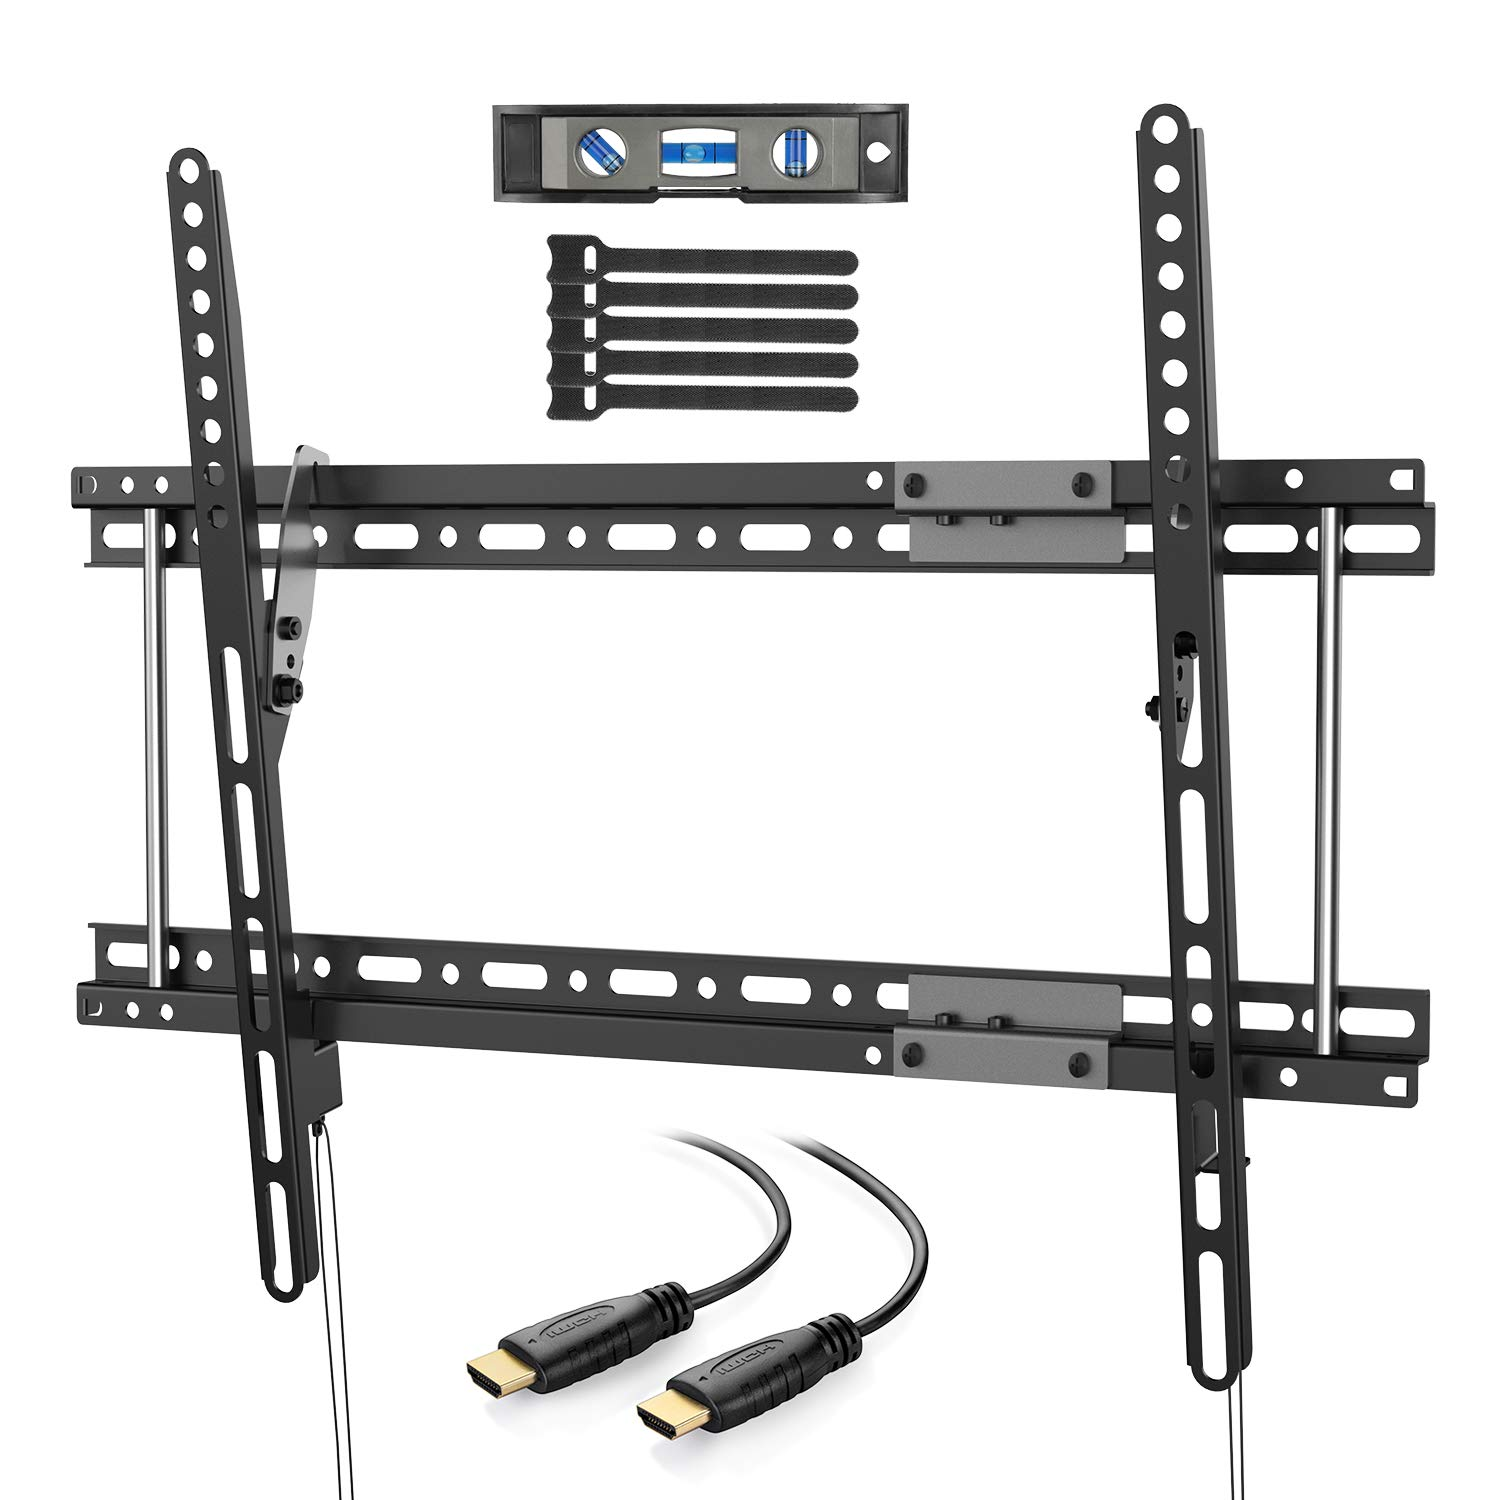 PERLESMITH PSLTK2 Tilting TV Wall Mount Bracket Fits for 16'',18'',24'' Studs, Low Profile Tilt TV Mount for Most 37-70 Inch LED, LCD, OLED, Plasma Flat Screen TVs with VESA up to 600x400mm 132lbs